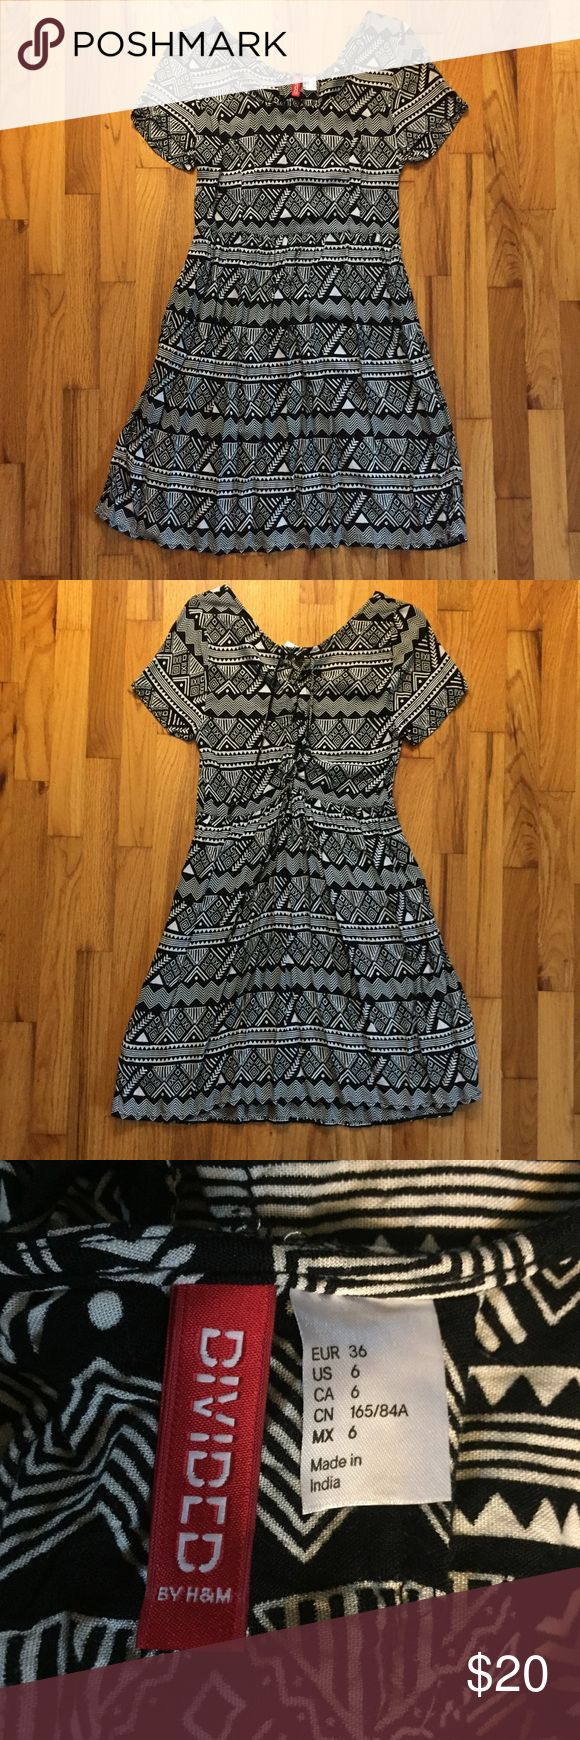 NWOT Aztec Print Dress Never worn! Brand new super cute Aztec print dress with lace up back detail. Divided Dresses